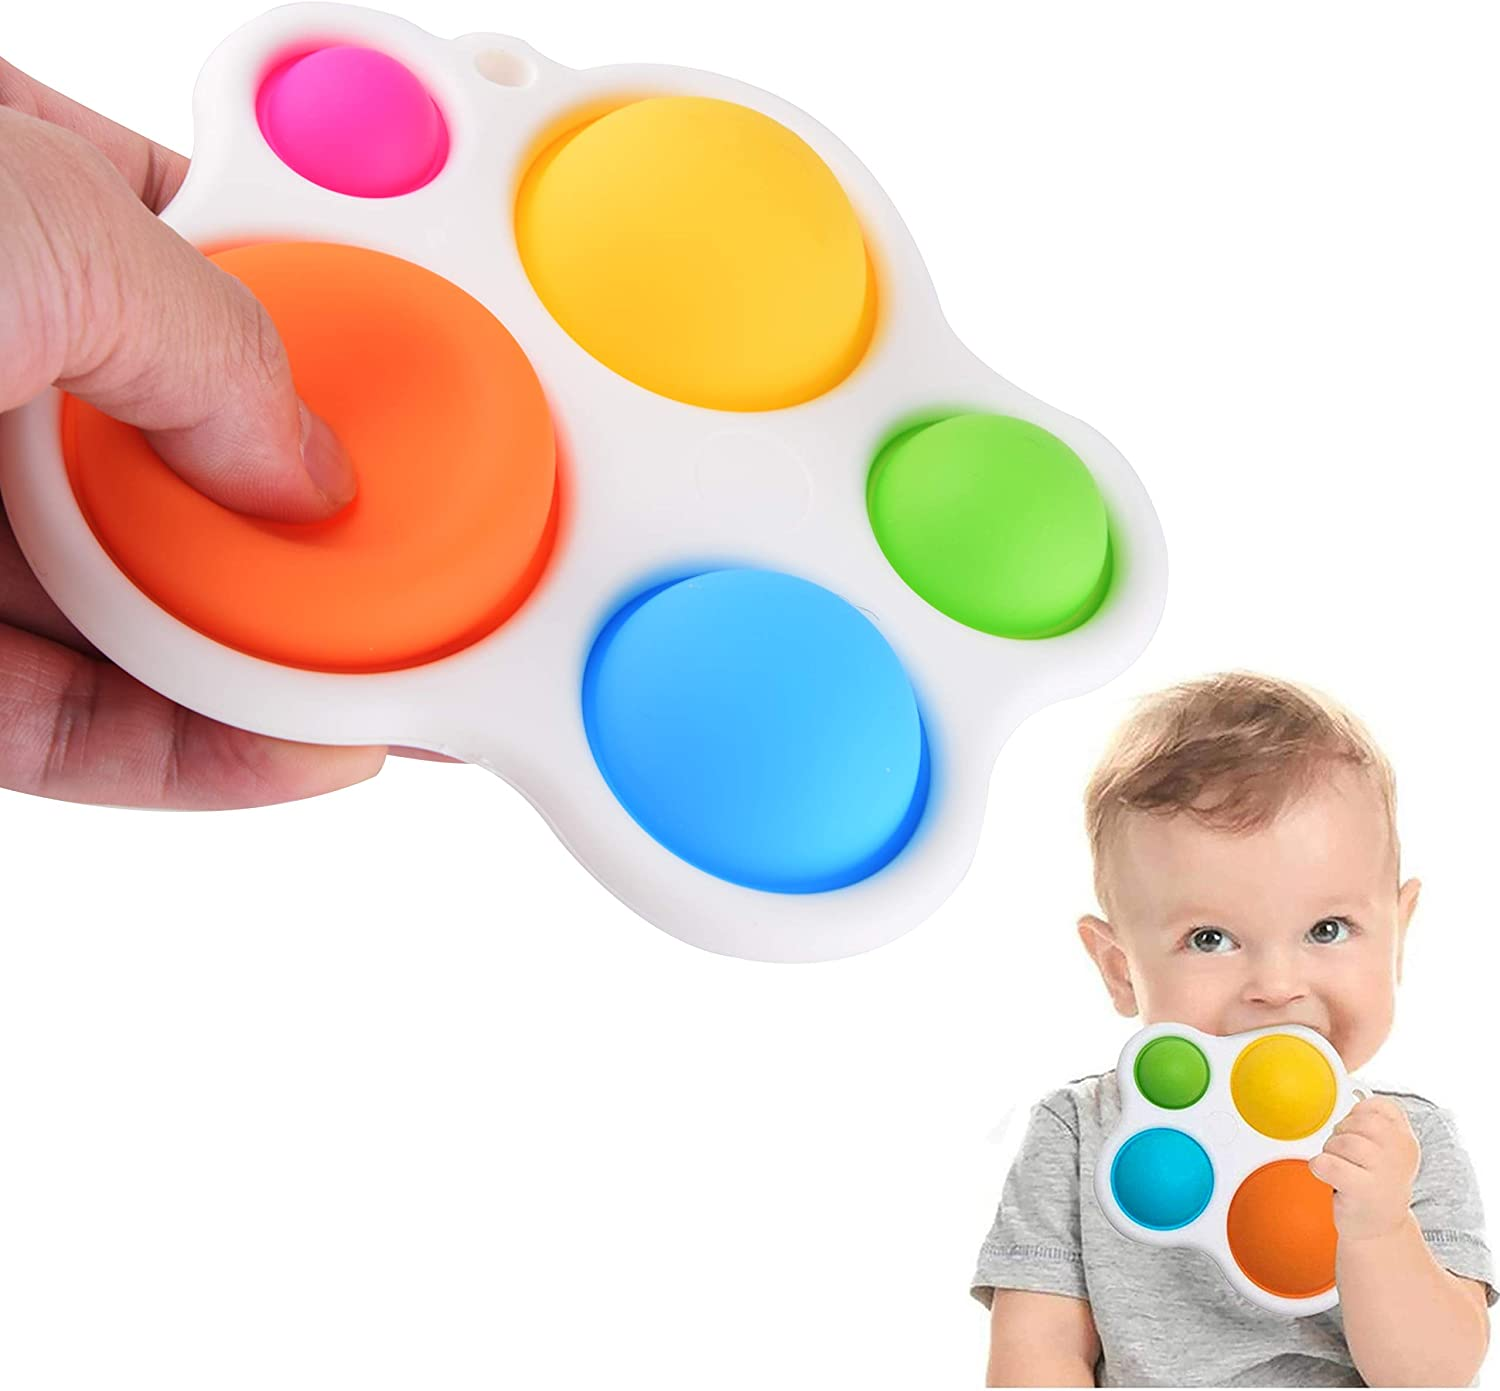 Rawskro Simple Dimple Fidget Toy,Kids Sensory Simple Dimple Fidget Toy for Ages 6 Months and Up Early Educational Toy,Dimple Fidget Toys for Kids and Adults Release Stress and Anxiety